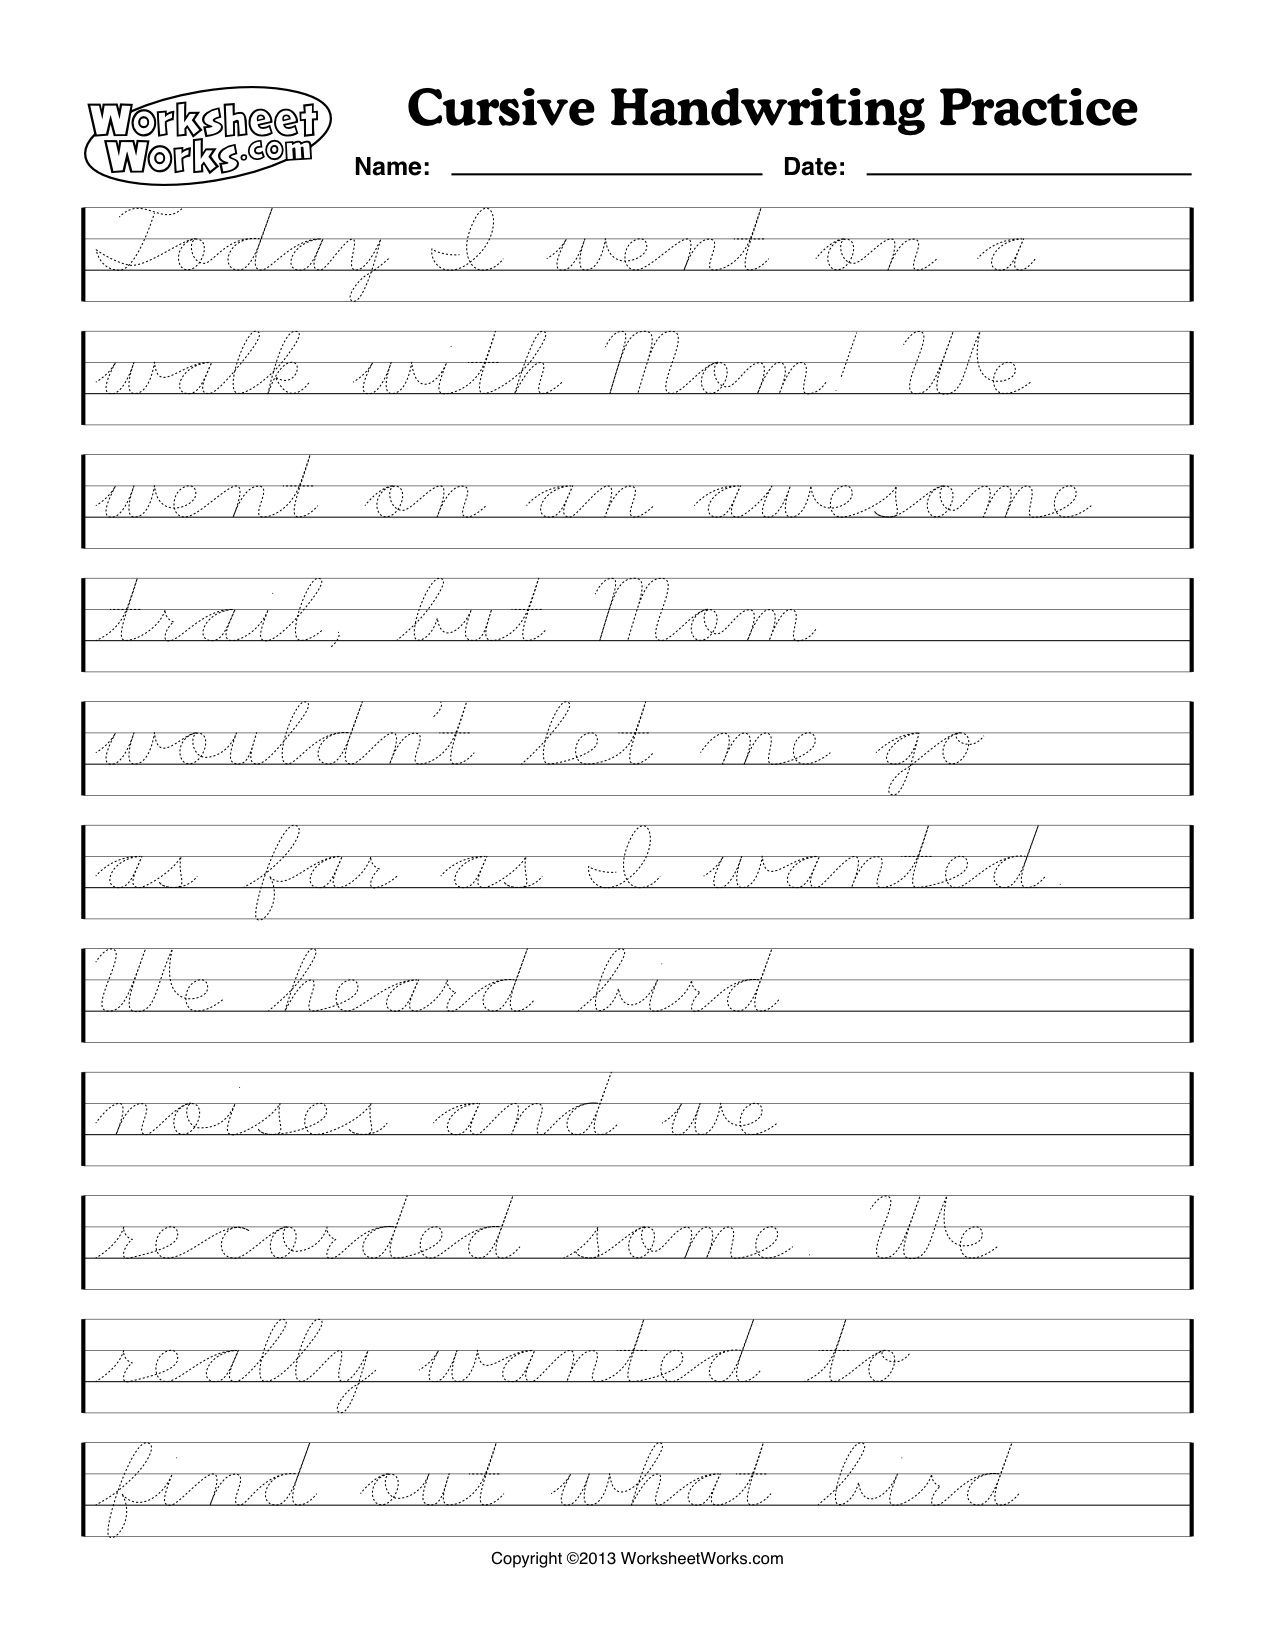 cursive handwriting worksheets | Cursive Writing Worksheet One Word ...